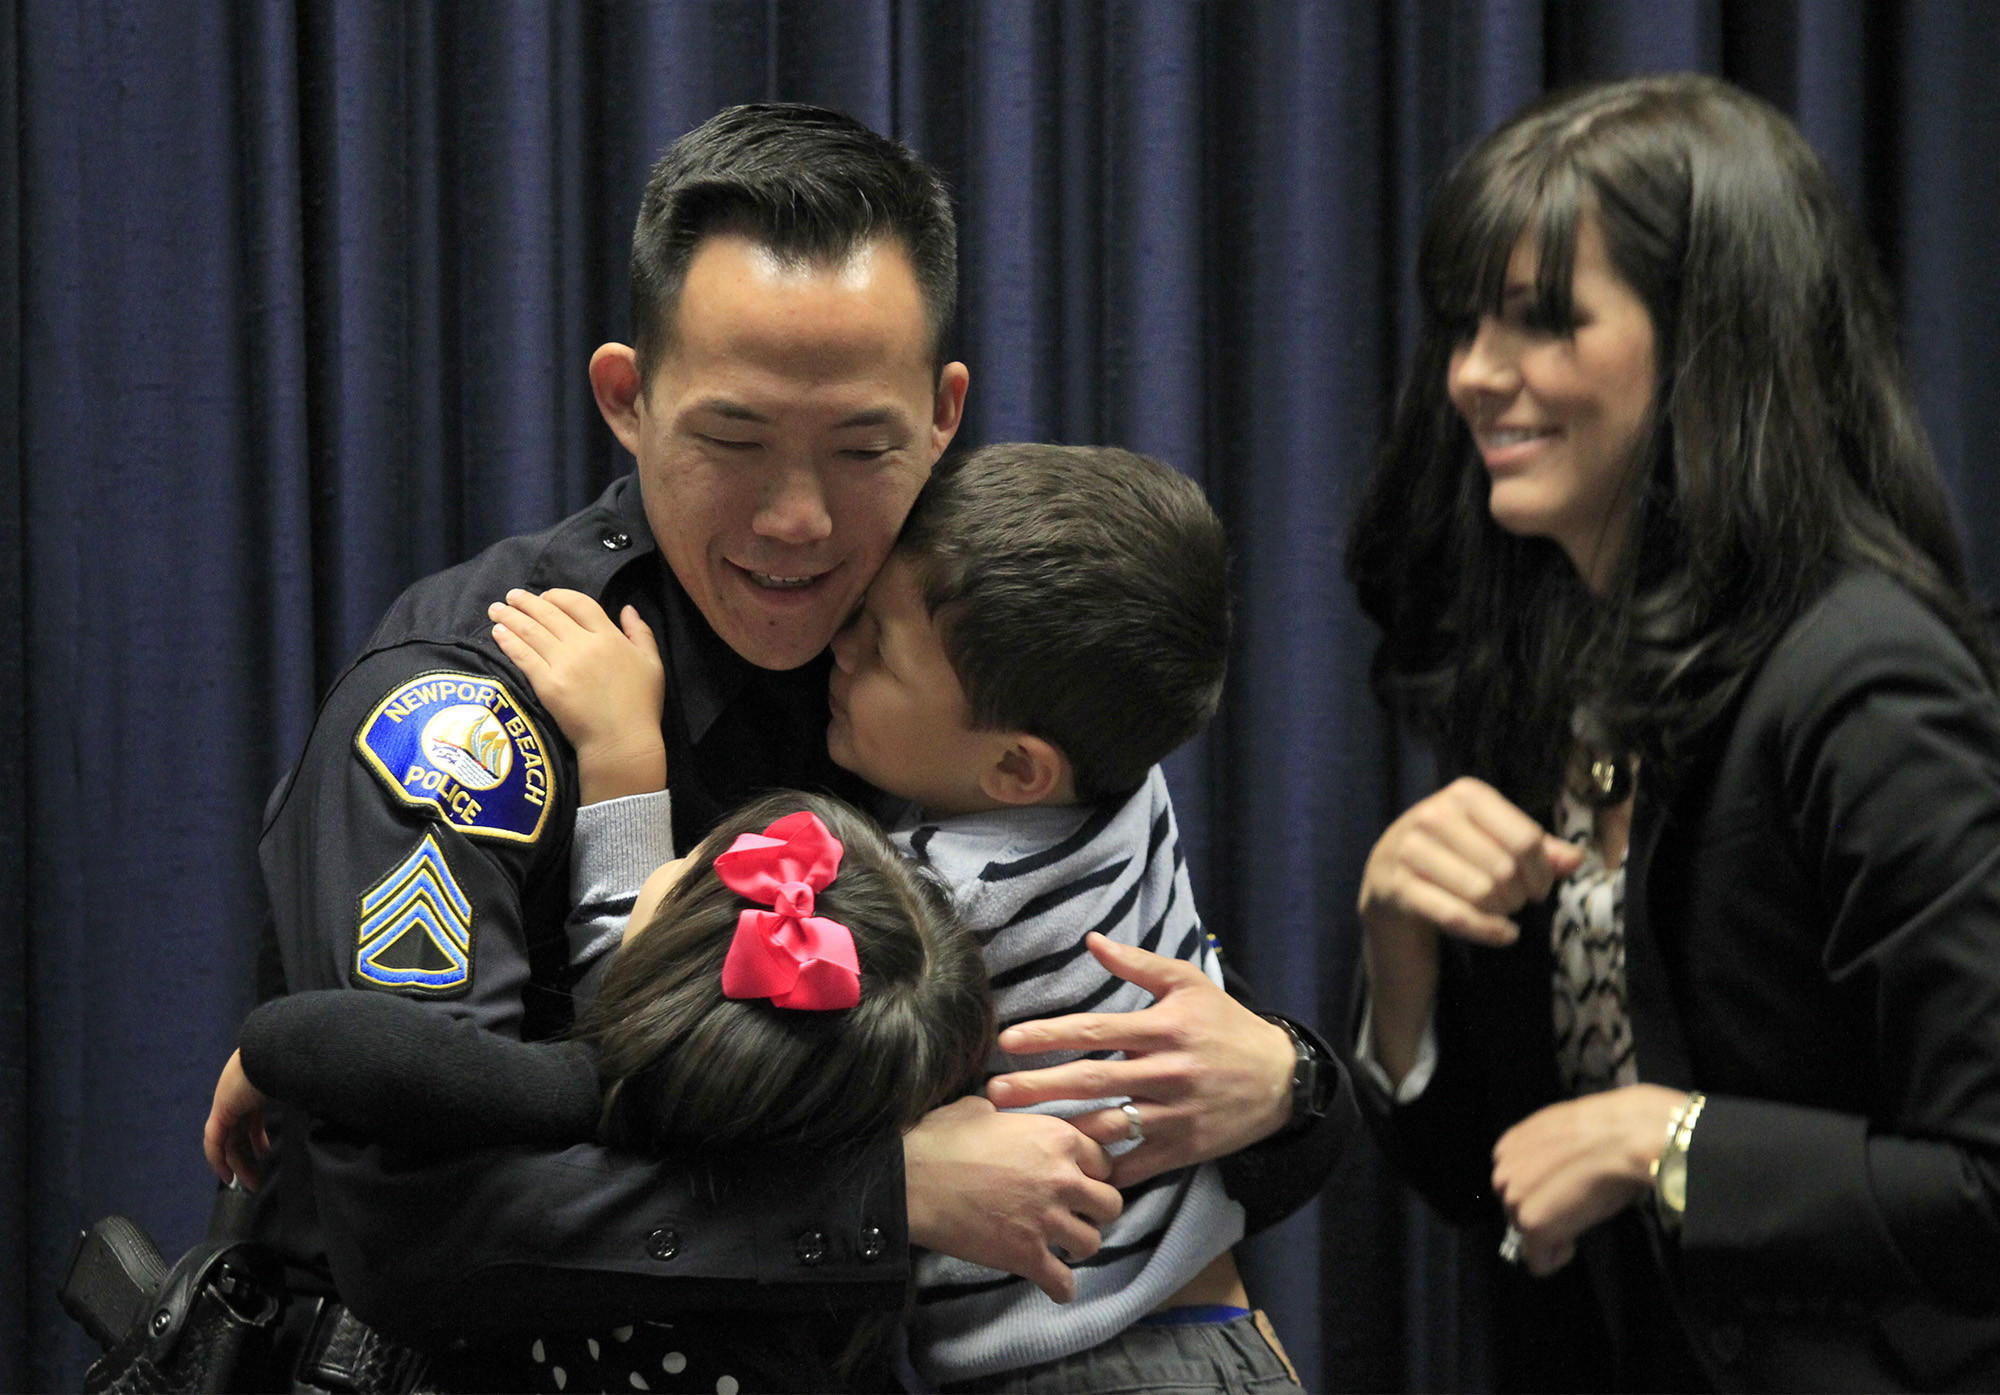 Sgt. Darrin Joe shares a hug with his son Scott, 4, and daughter Whitney, 2, after his wife Wendy, right, pinned his new badge on him during a promotions ceremony at the Newport Beach Police Department on Thursday. (Kevin Chang/ Daily Pilot)